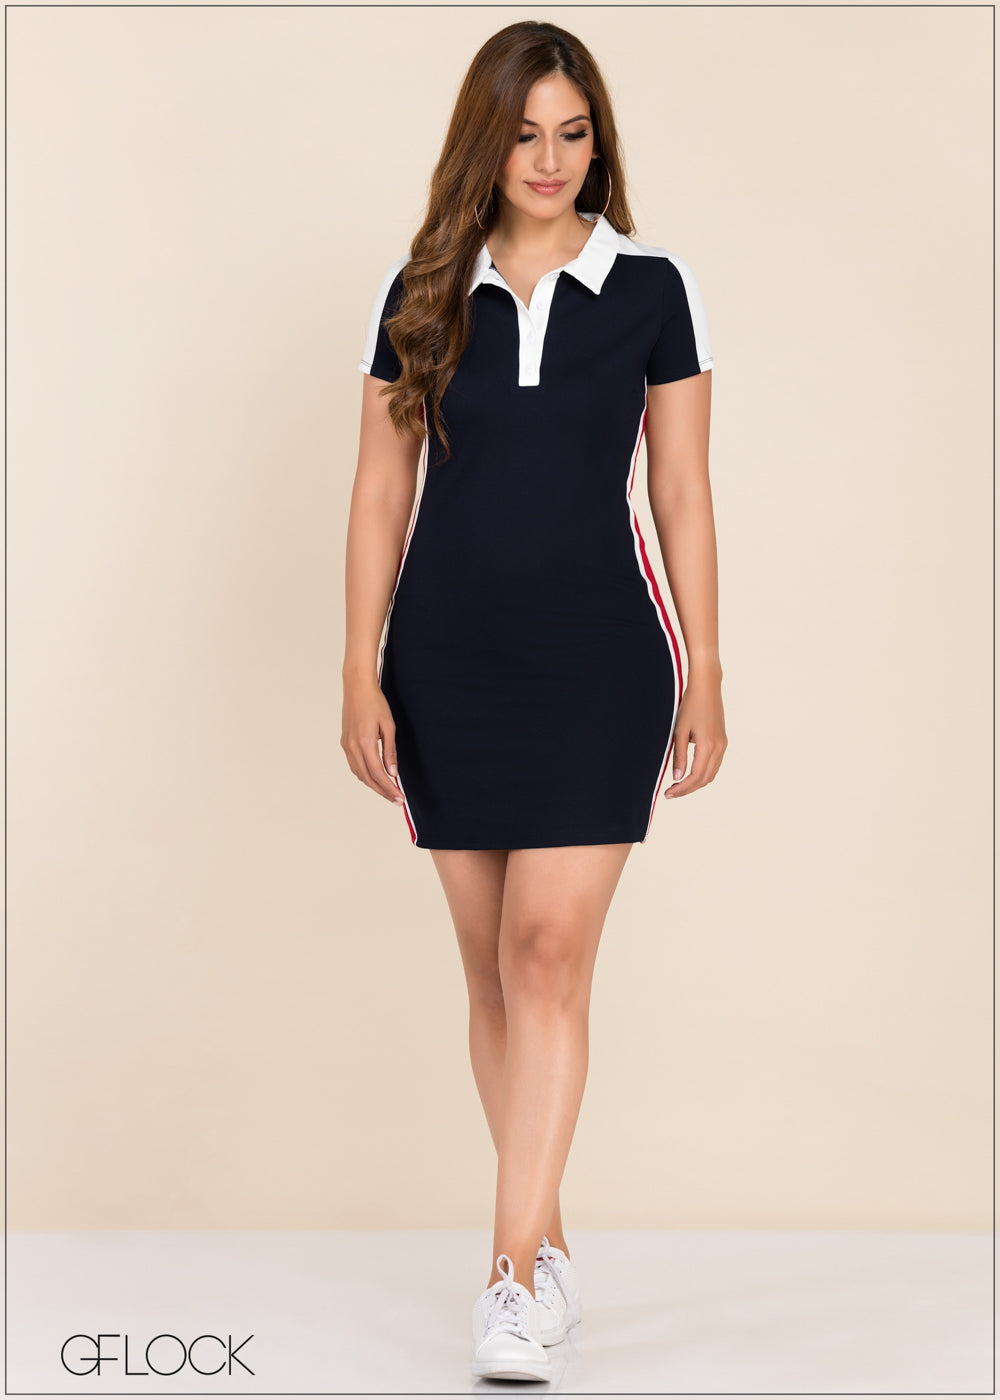 Contrast Detail Bodycon Dress - GFLOCK.LK